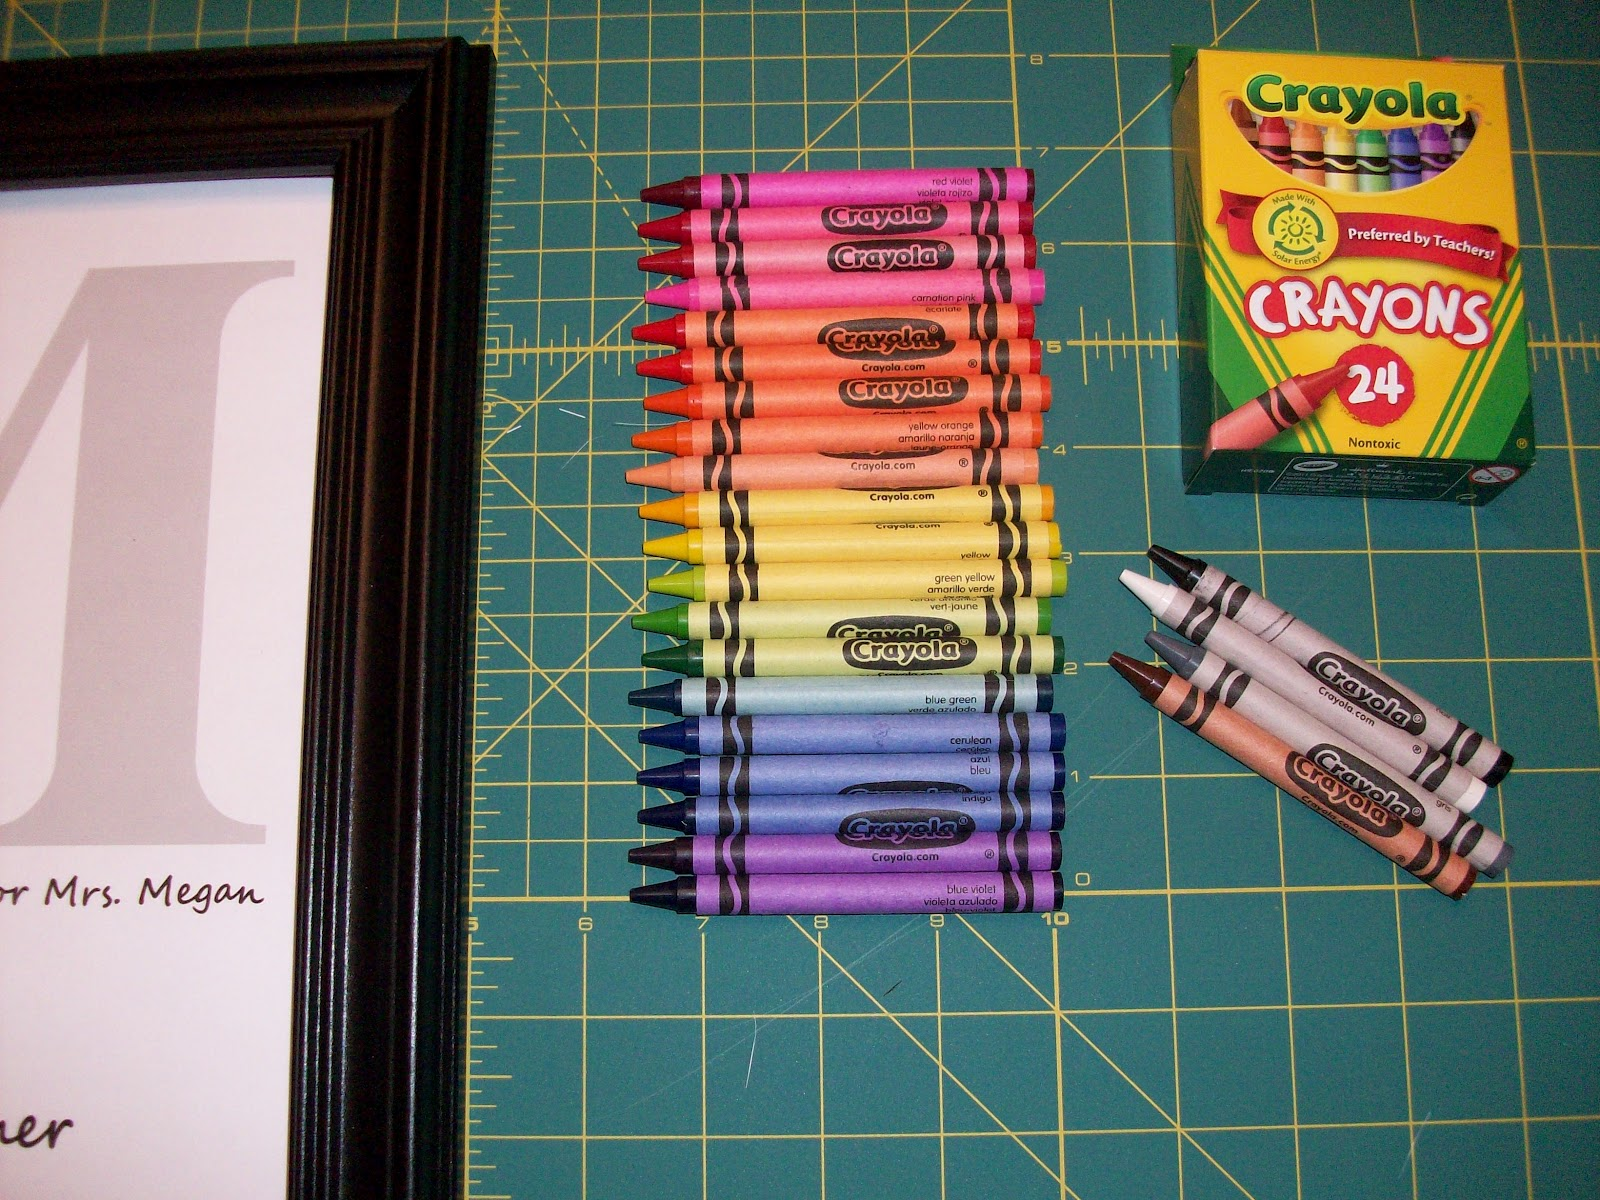 CouponQuilter: Crayon Monogram & Tutorial